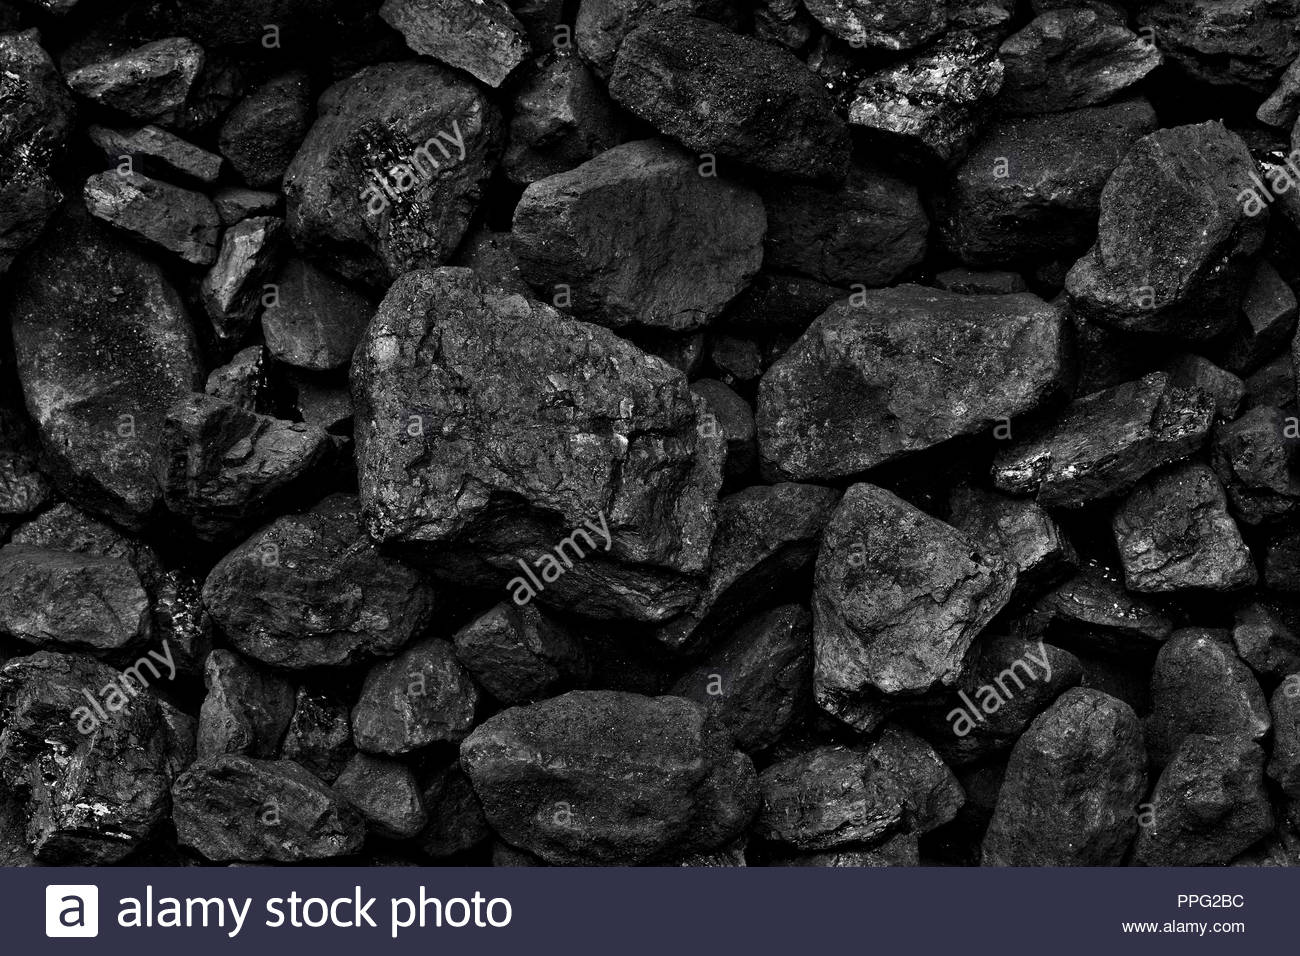 Pile of coal texture background photo of coal mine background 1300x956